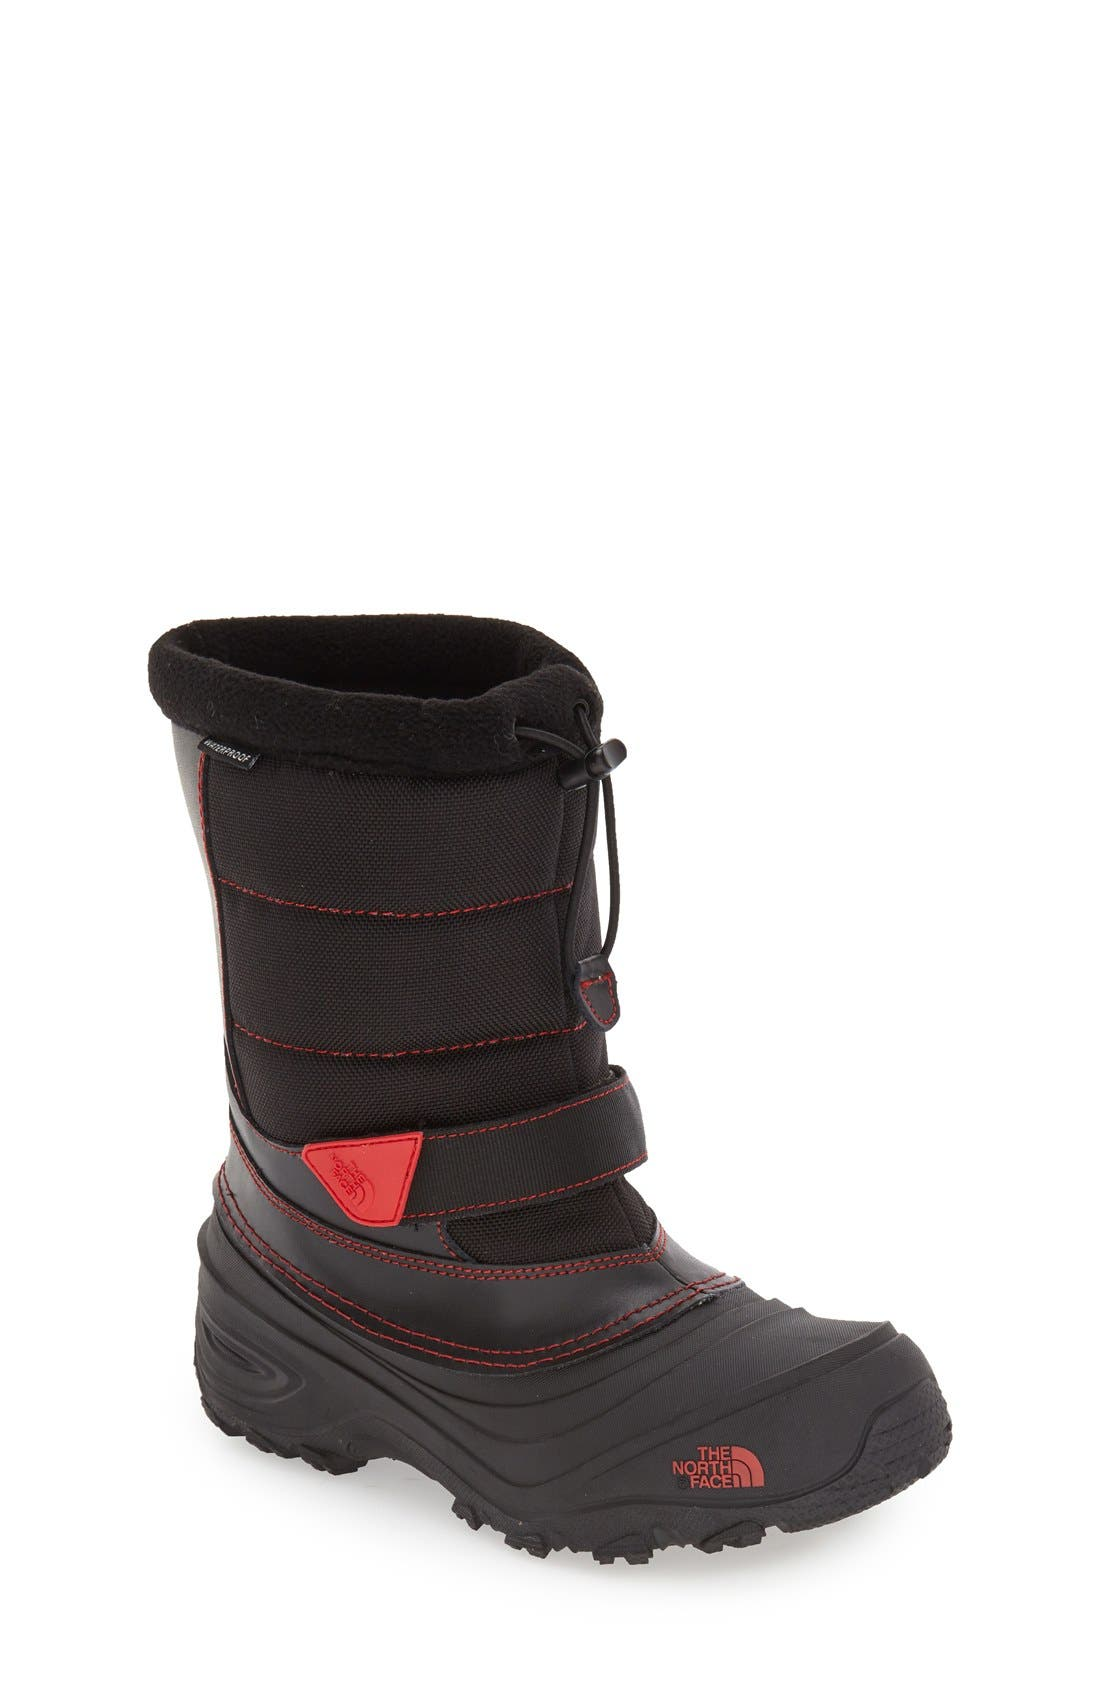 Alternate Image 1 Selected - The North Face 'Alpenglow Extreme II' Waterproof Snow Boot (Toddler, Little Kid & Big Kid)